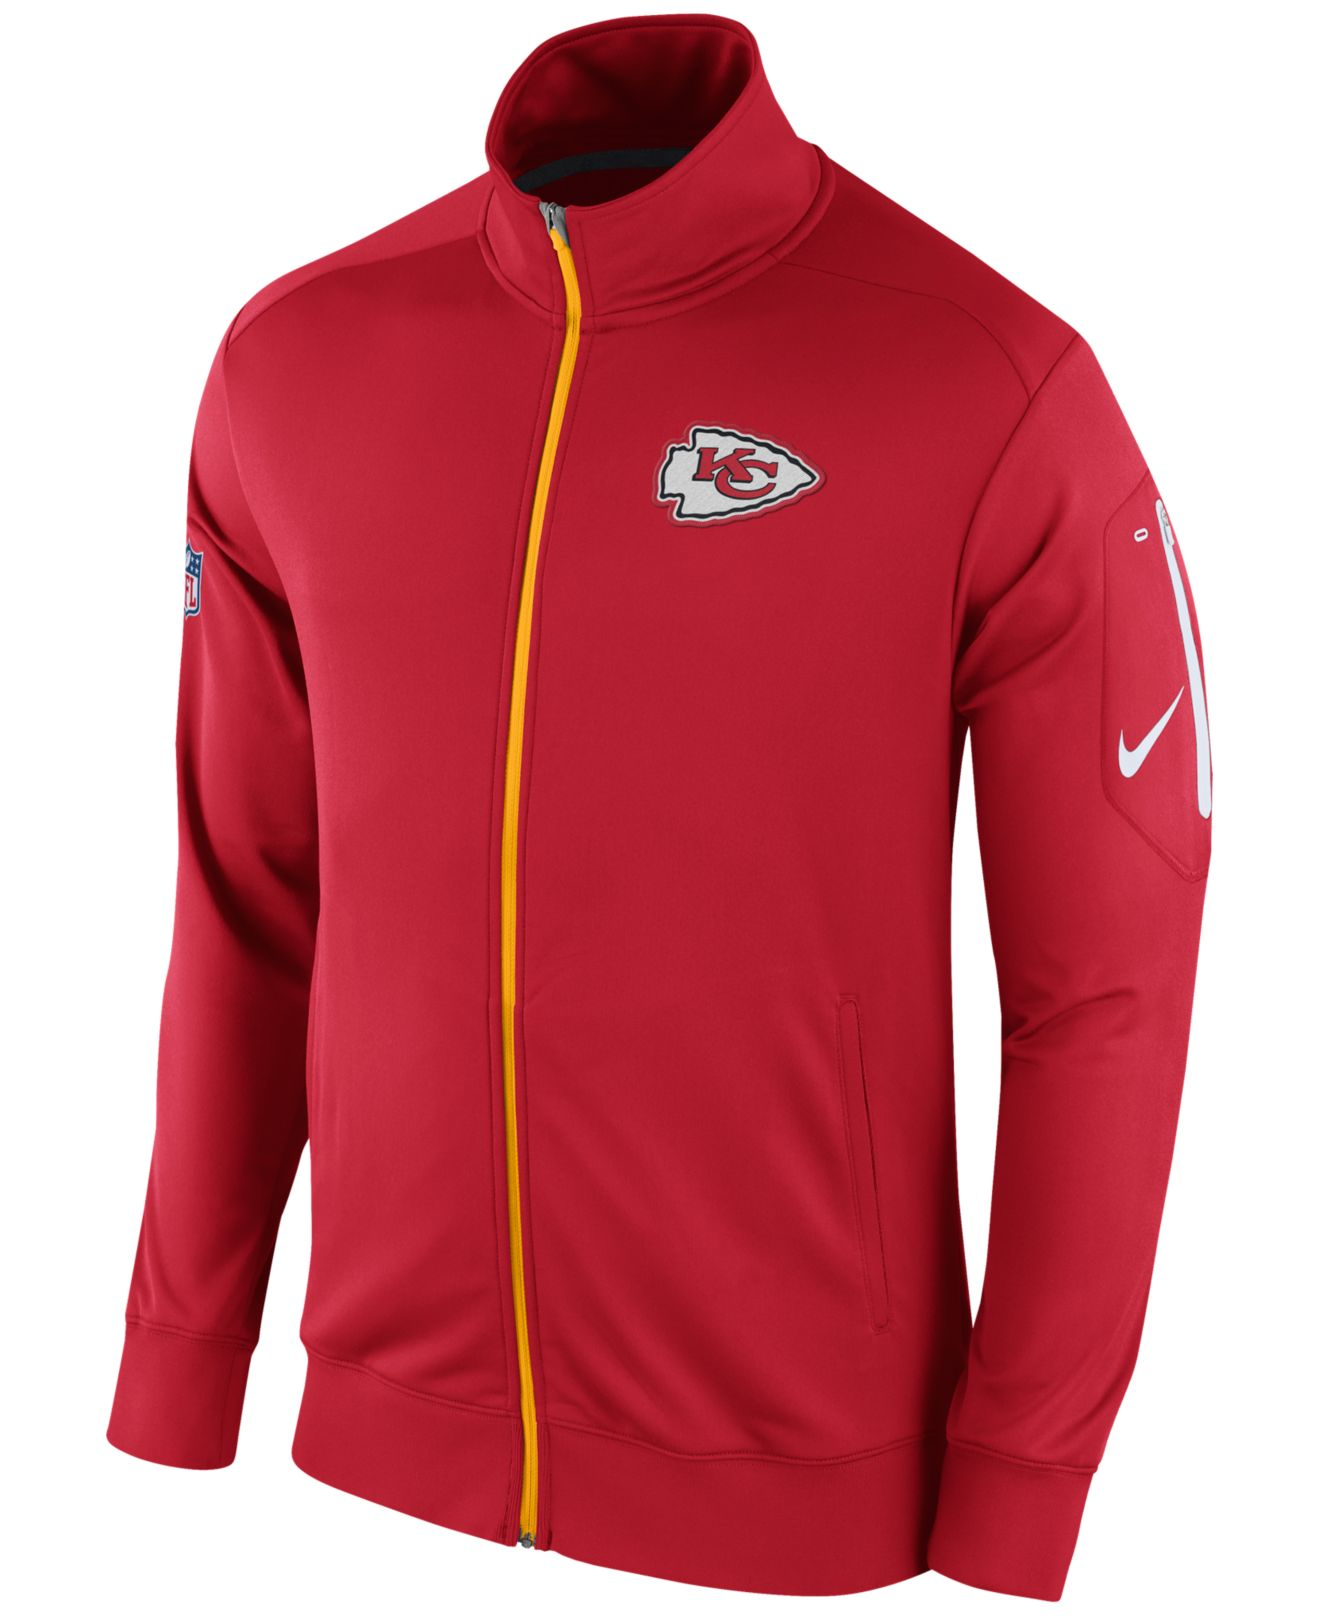 Nike Men S Kansas City Chiefs Empower Jacket In Red For